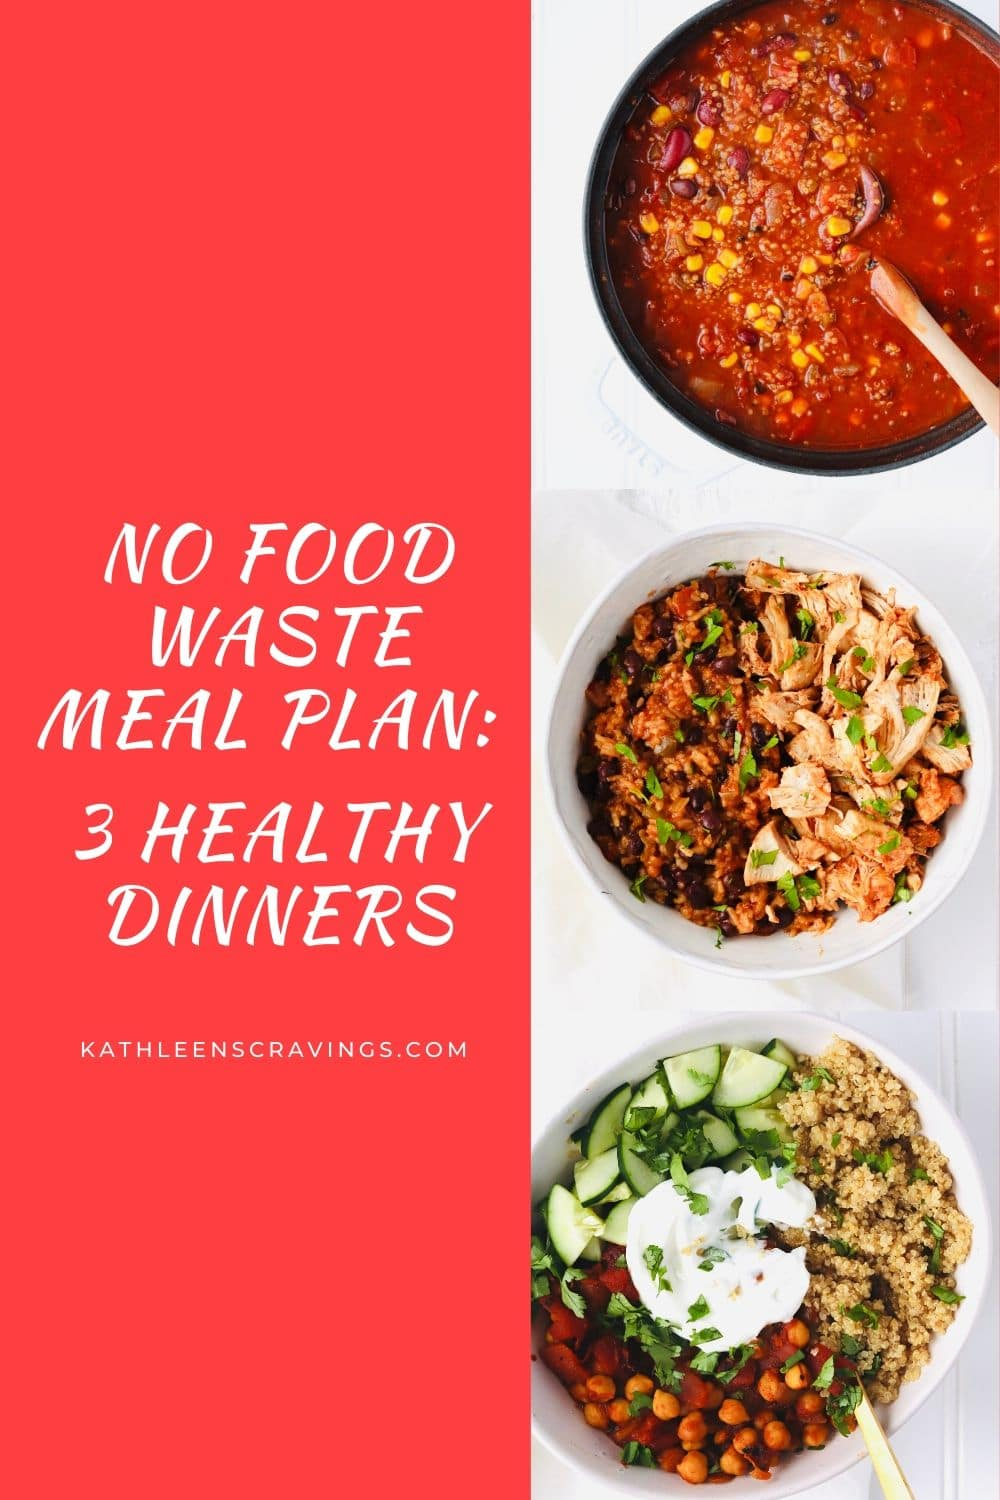 No Food Waste Meal Plan: 3 Healthy Meals